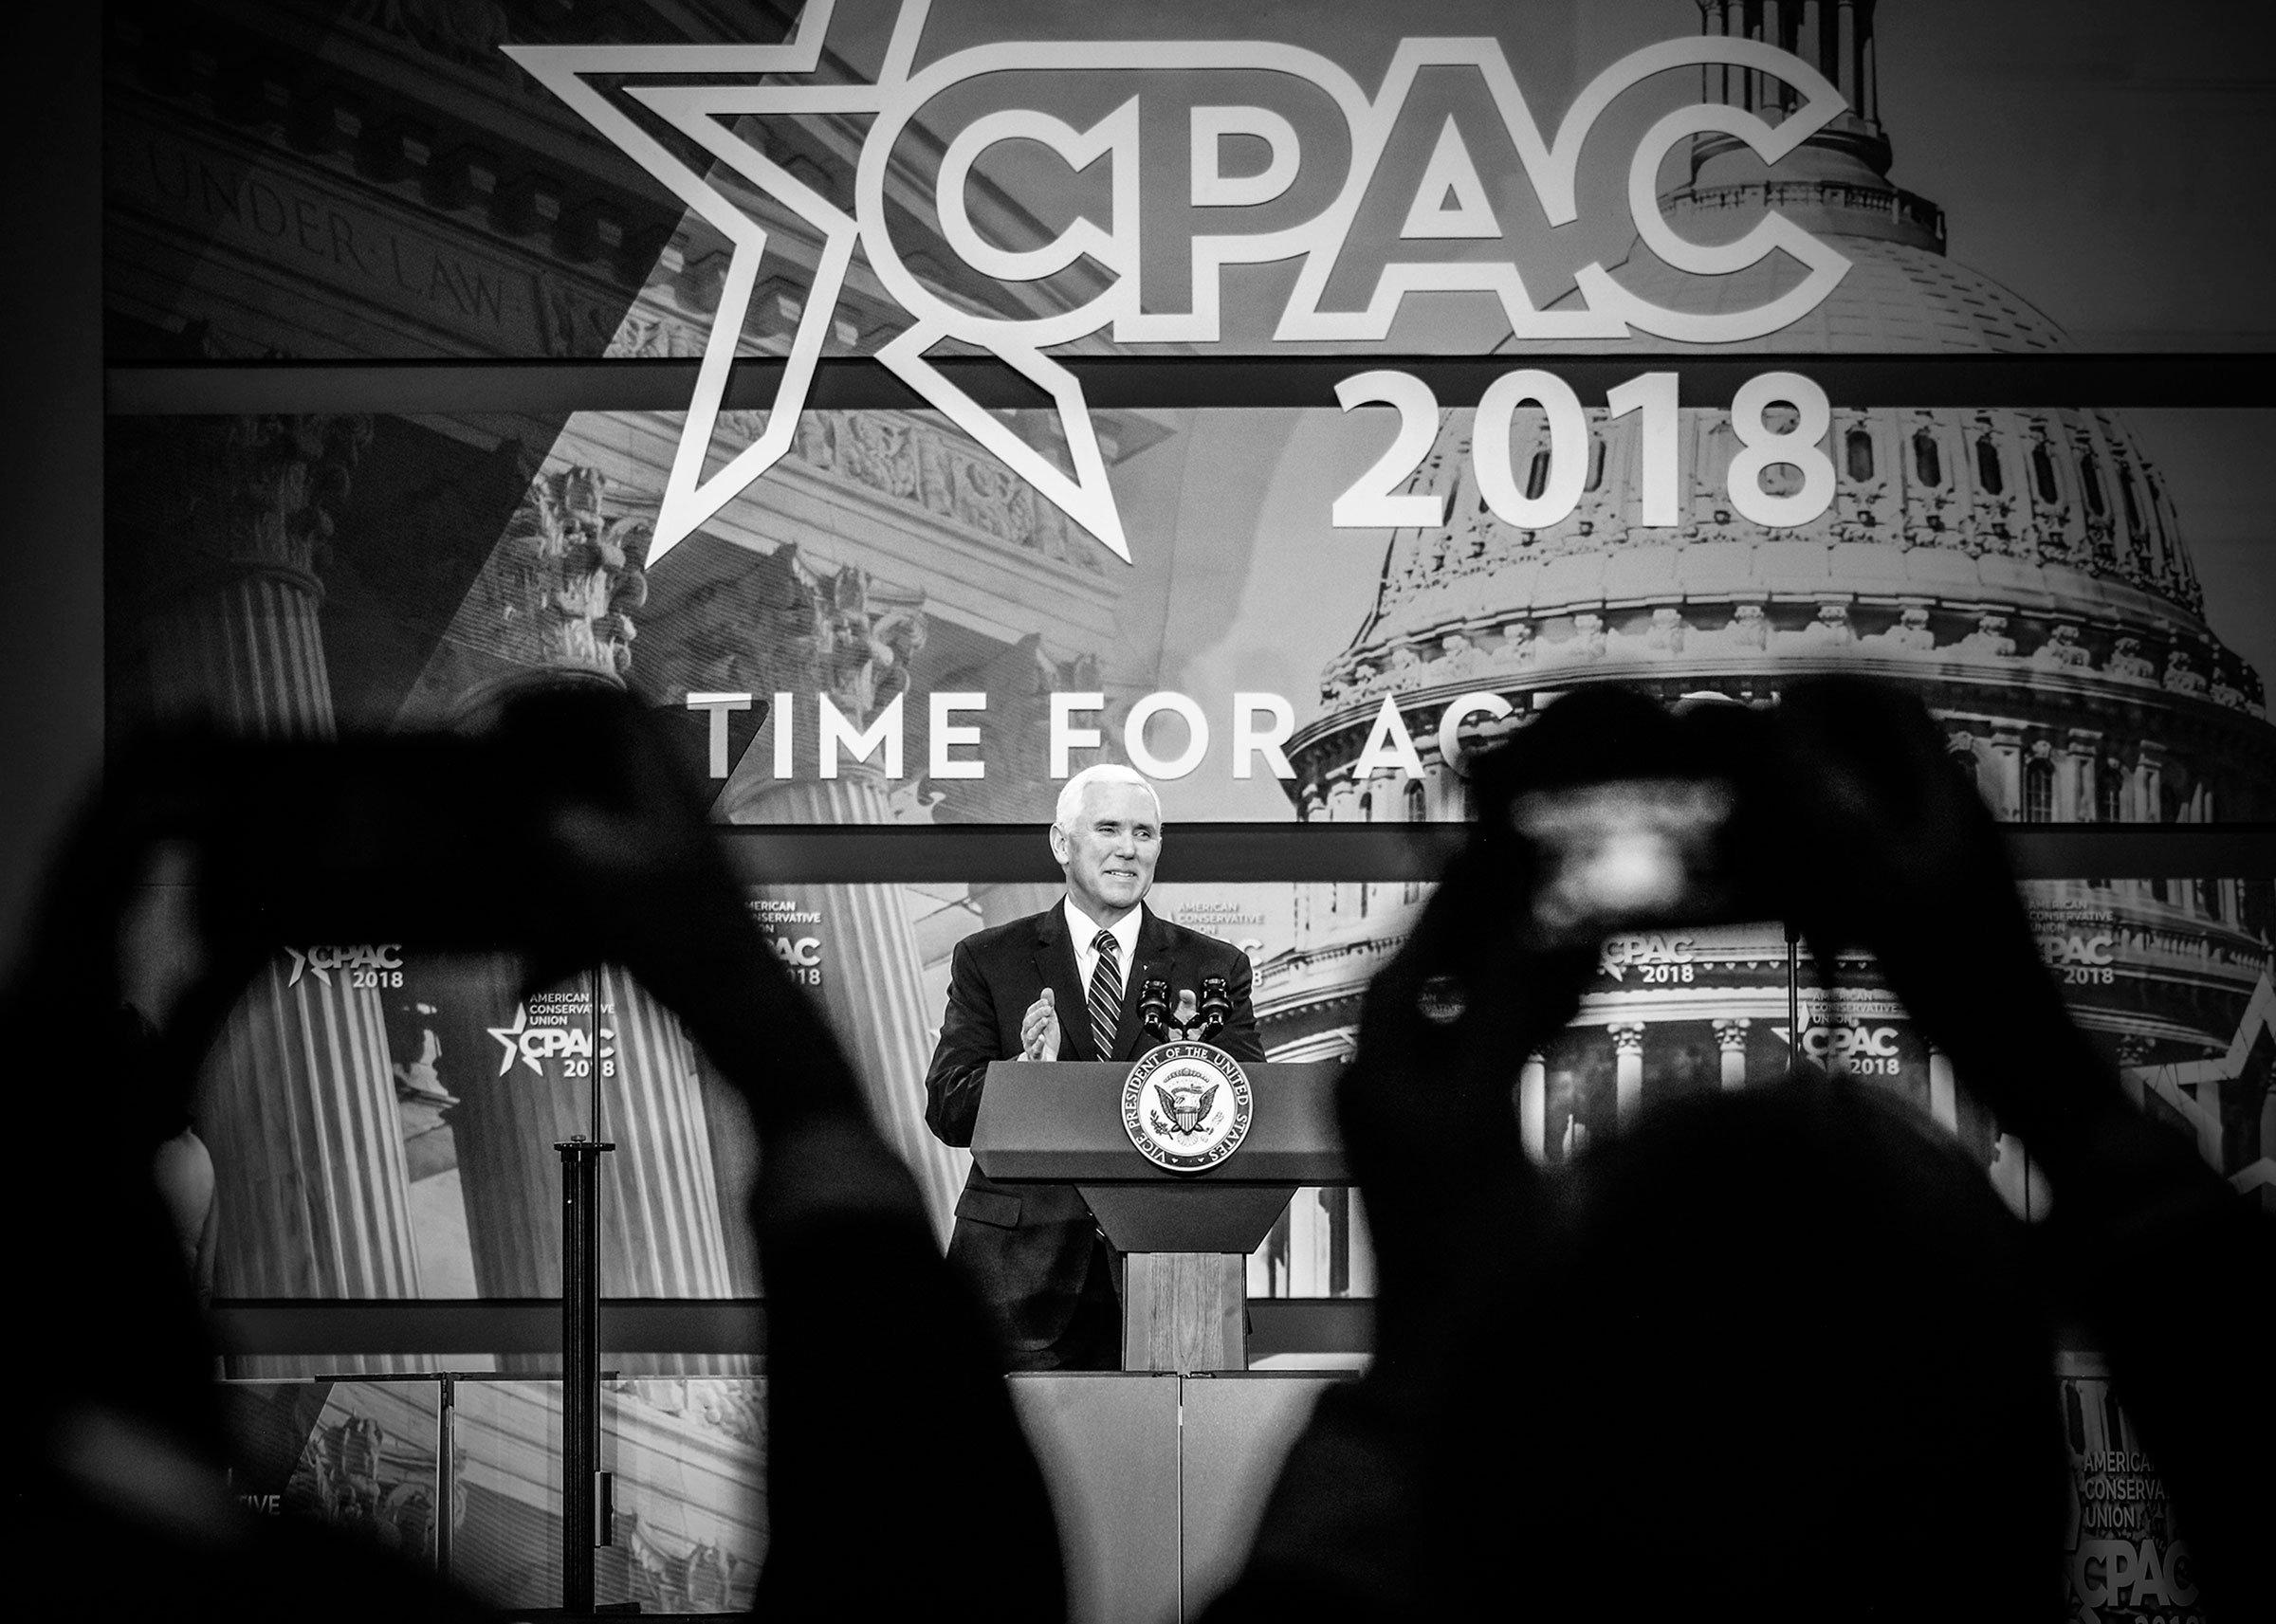 Vice President Mike Pence speaks at the Conservative Political Action Conference (CPAC) in Maryland, February 24, 2018.